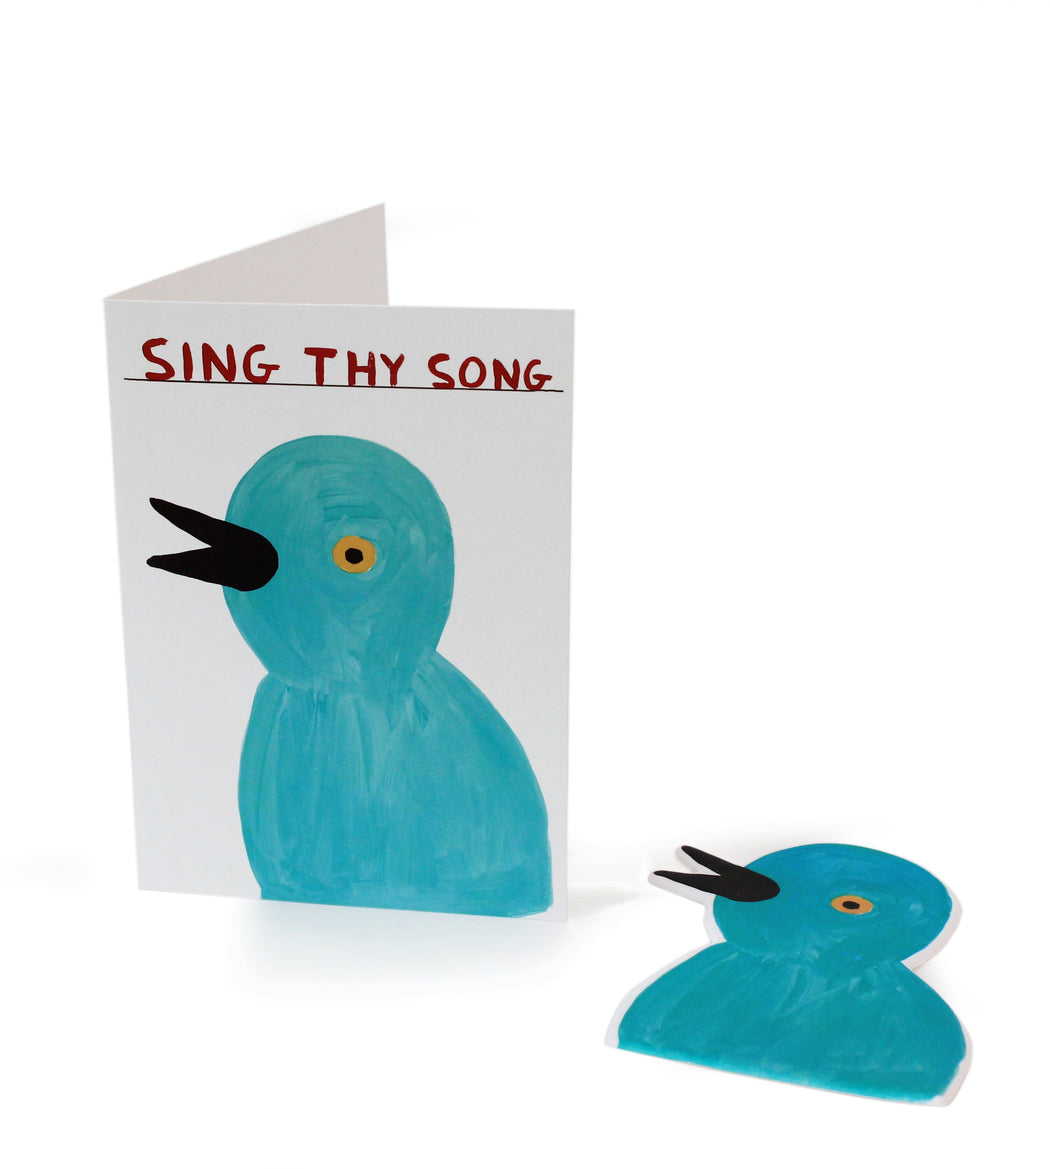 Sing Thy Song Puffy Sticker Card X David Shrigley